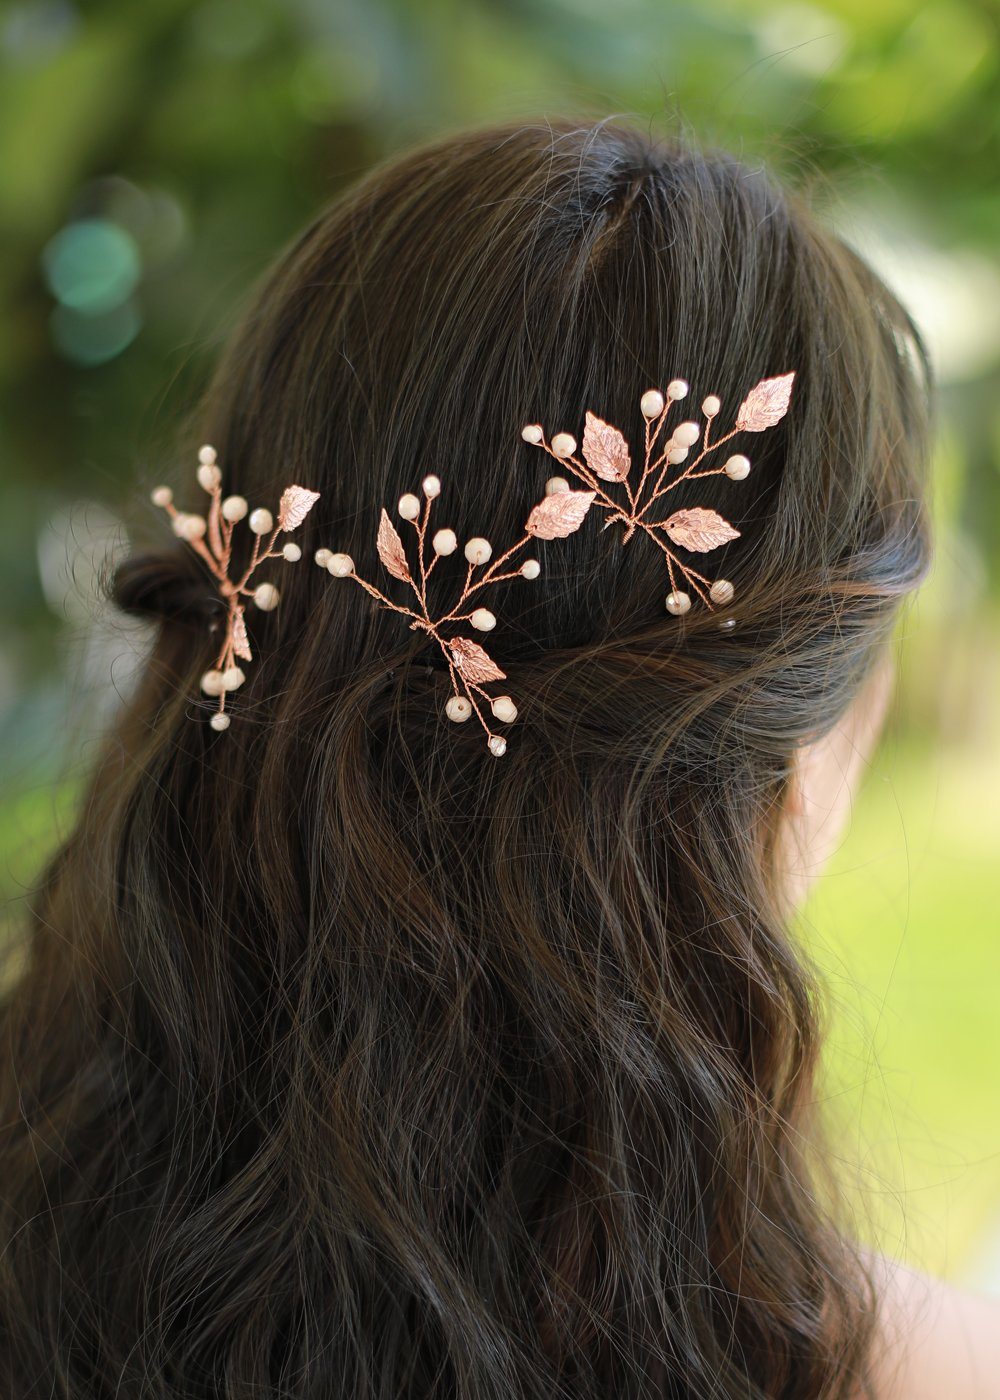 Cheap Rose Gold Hair Accessories Find Rose Gold Hair Accessories Deals On Line At Alibaba Com